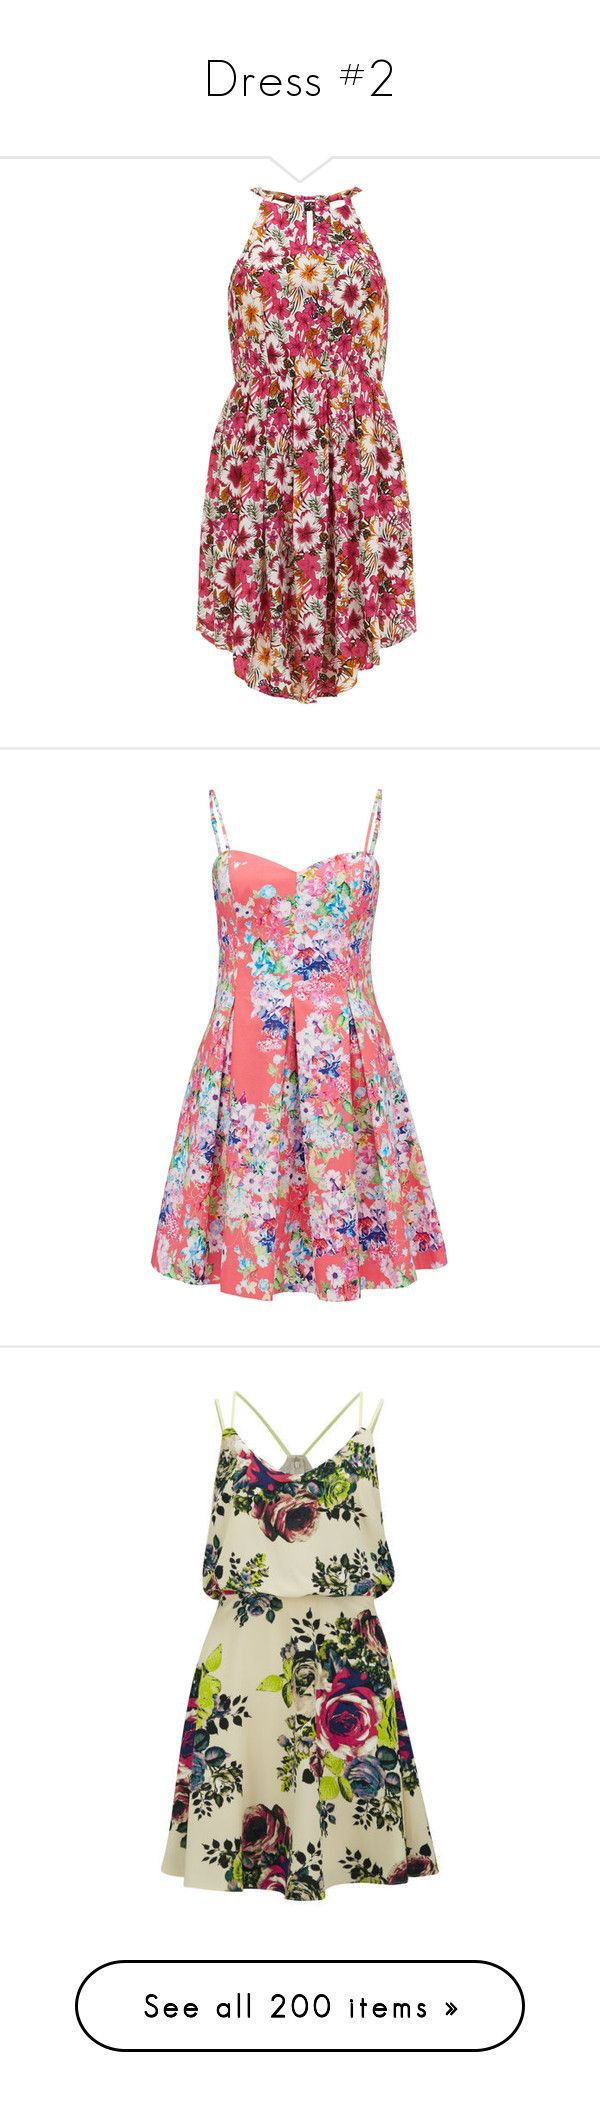 """""""Dress #2"""" by raquelrsilva01 ❤ liked on Polyvore featuring dresses, pink, sundress dresses, floral printed dress, sun dresses, pink necktie, neck tie dress, vestidos, short dresses and robes"""